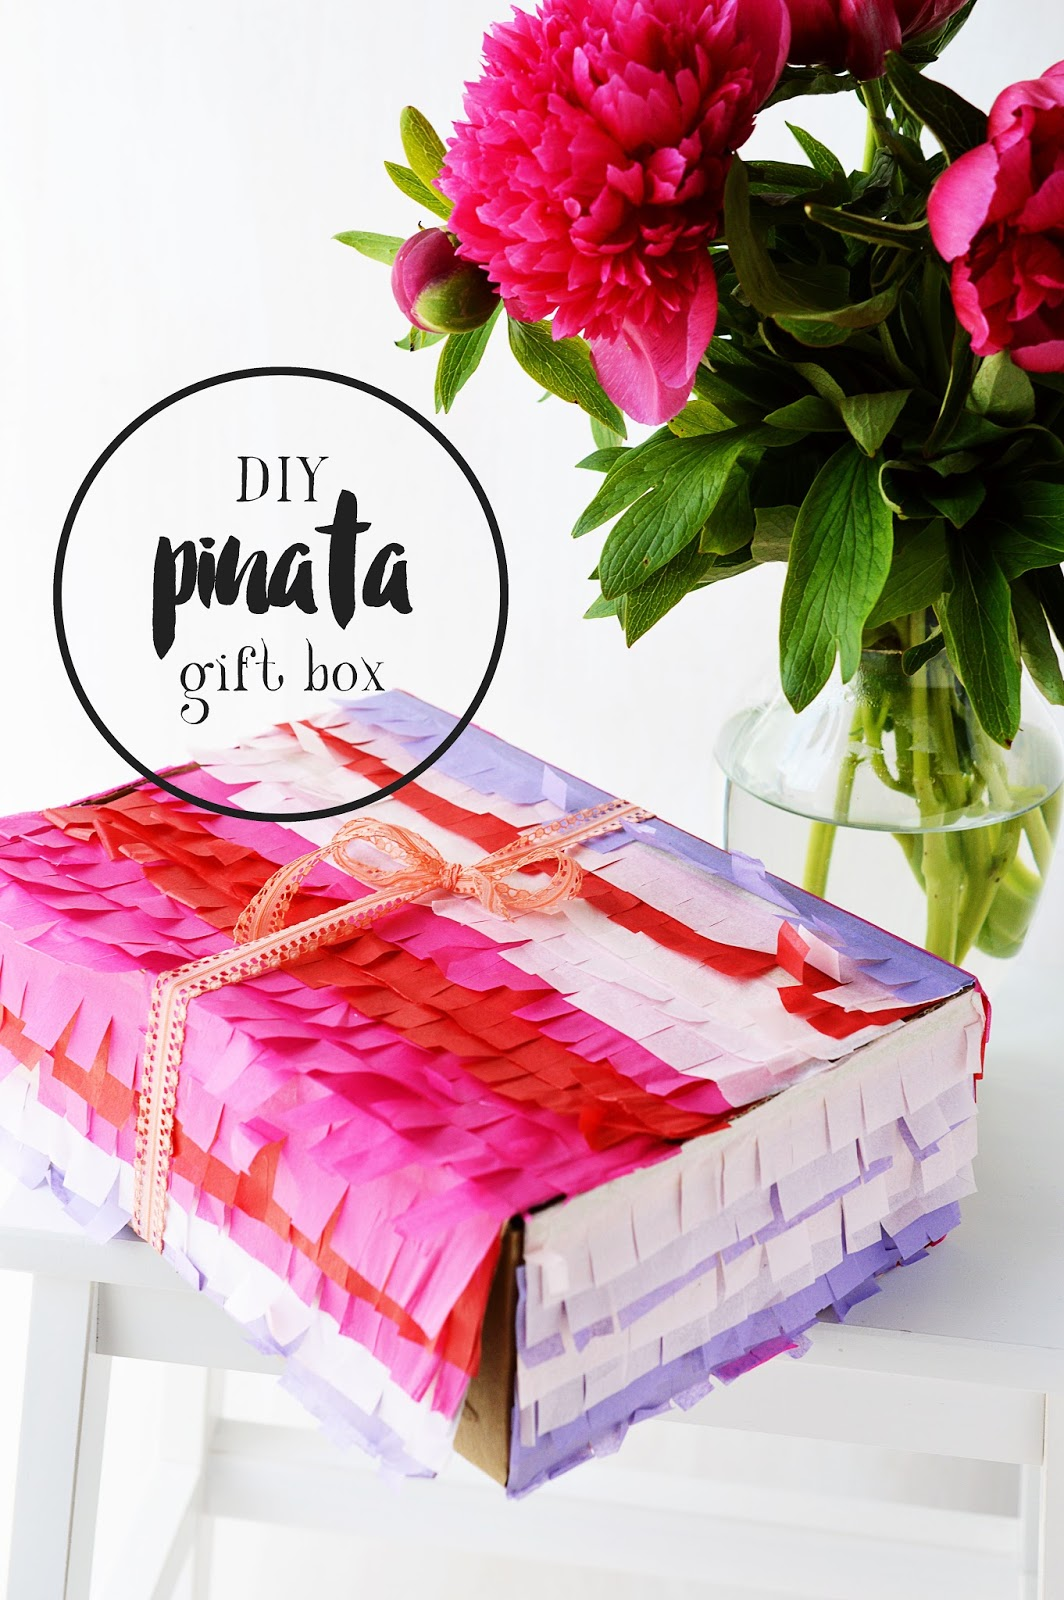 DIY Pinata Gift Box | Motte's Blog